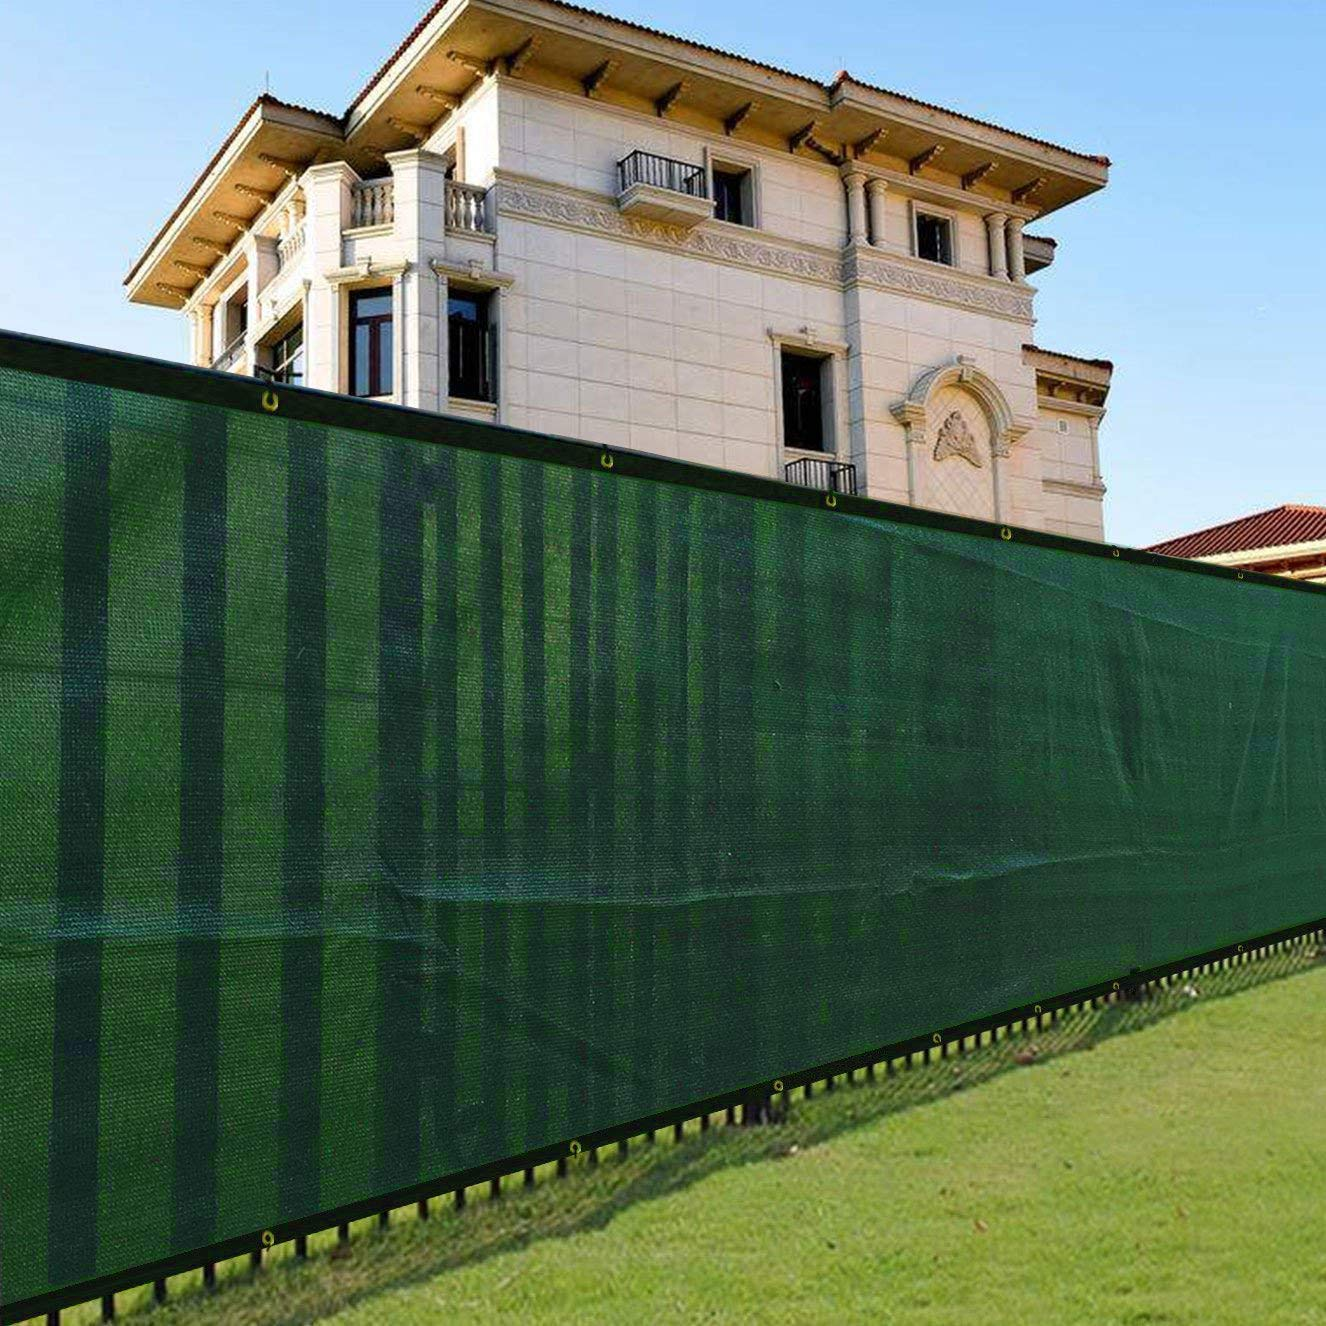 Gharpbik Fence Privacy Screen 6x50ft for Chain Link Fence Fabric Screening with Brass Grommets Outdoor 6ft Garden Patio Porch Construction Site 140gsm Shade Tarp Mesh UV Resistant Green